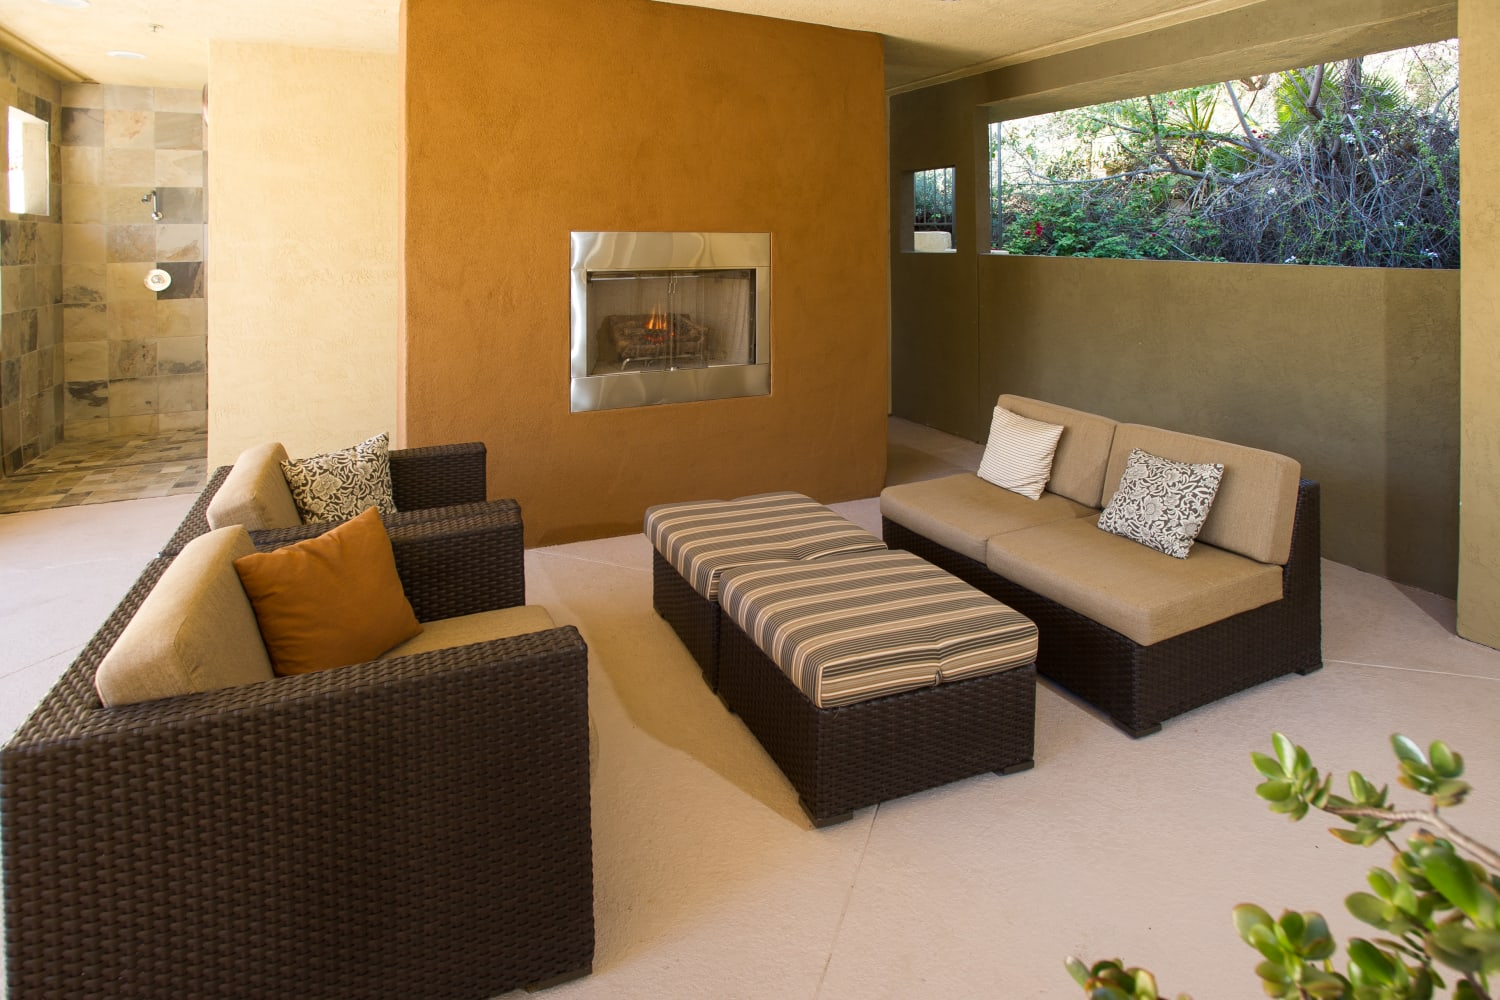 Fashion Terrace in San Diego, California, offers a covered patio